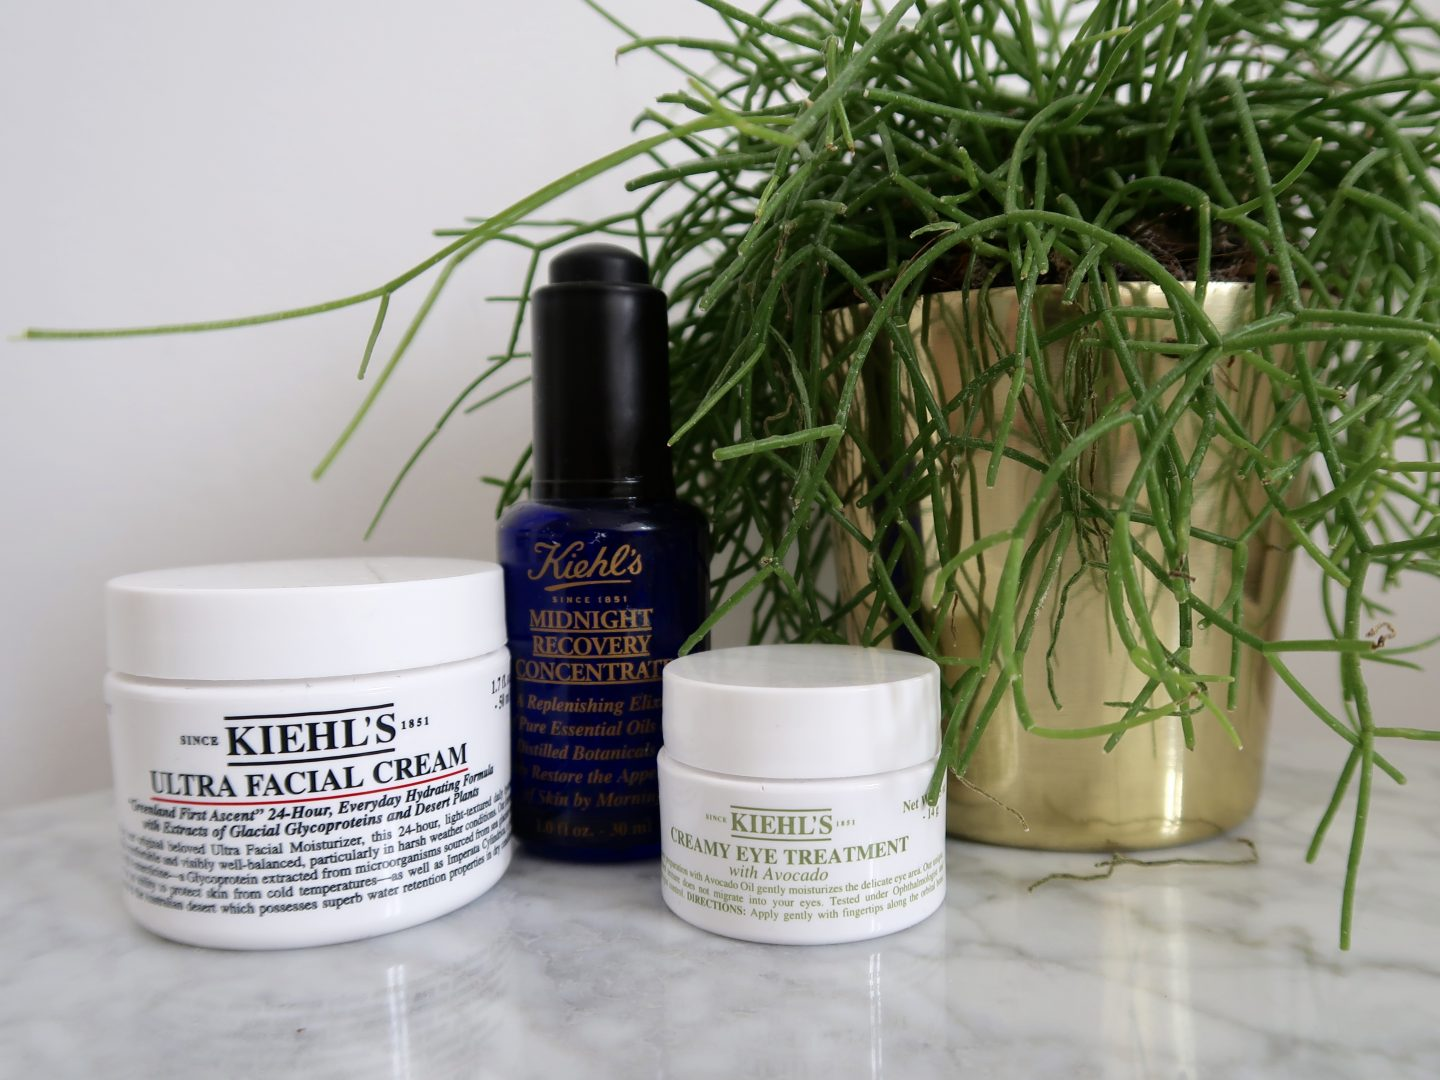 My favorite Kiehl's products that keep my skin moisturized